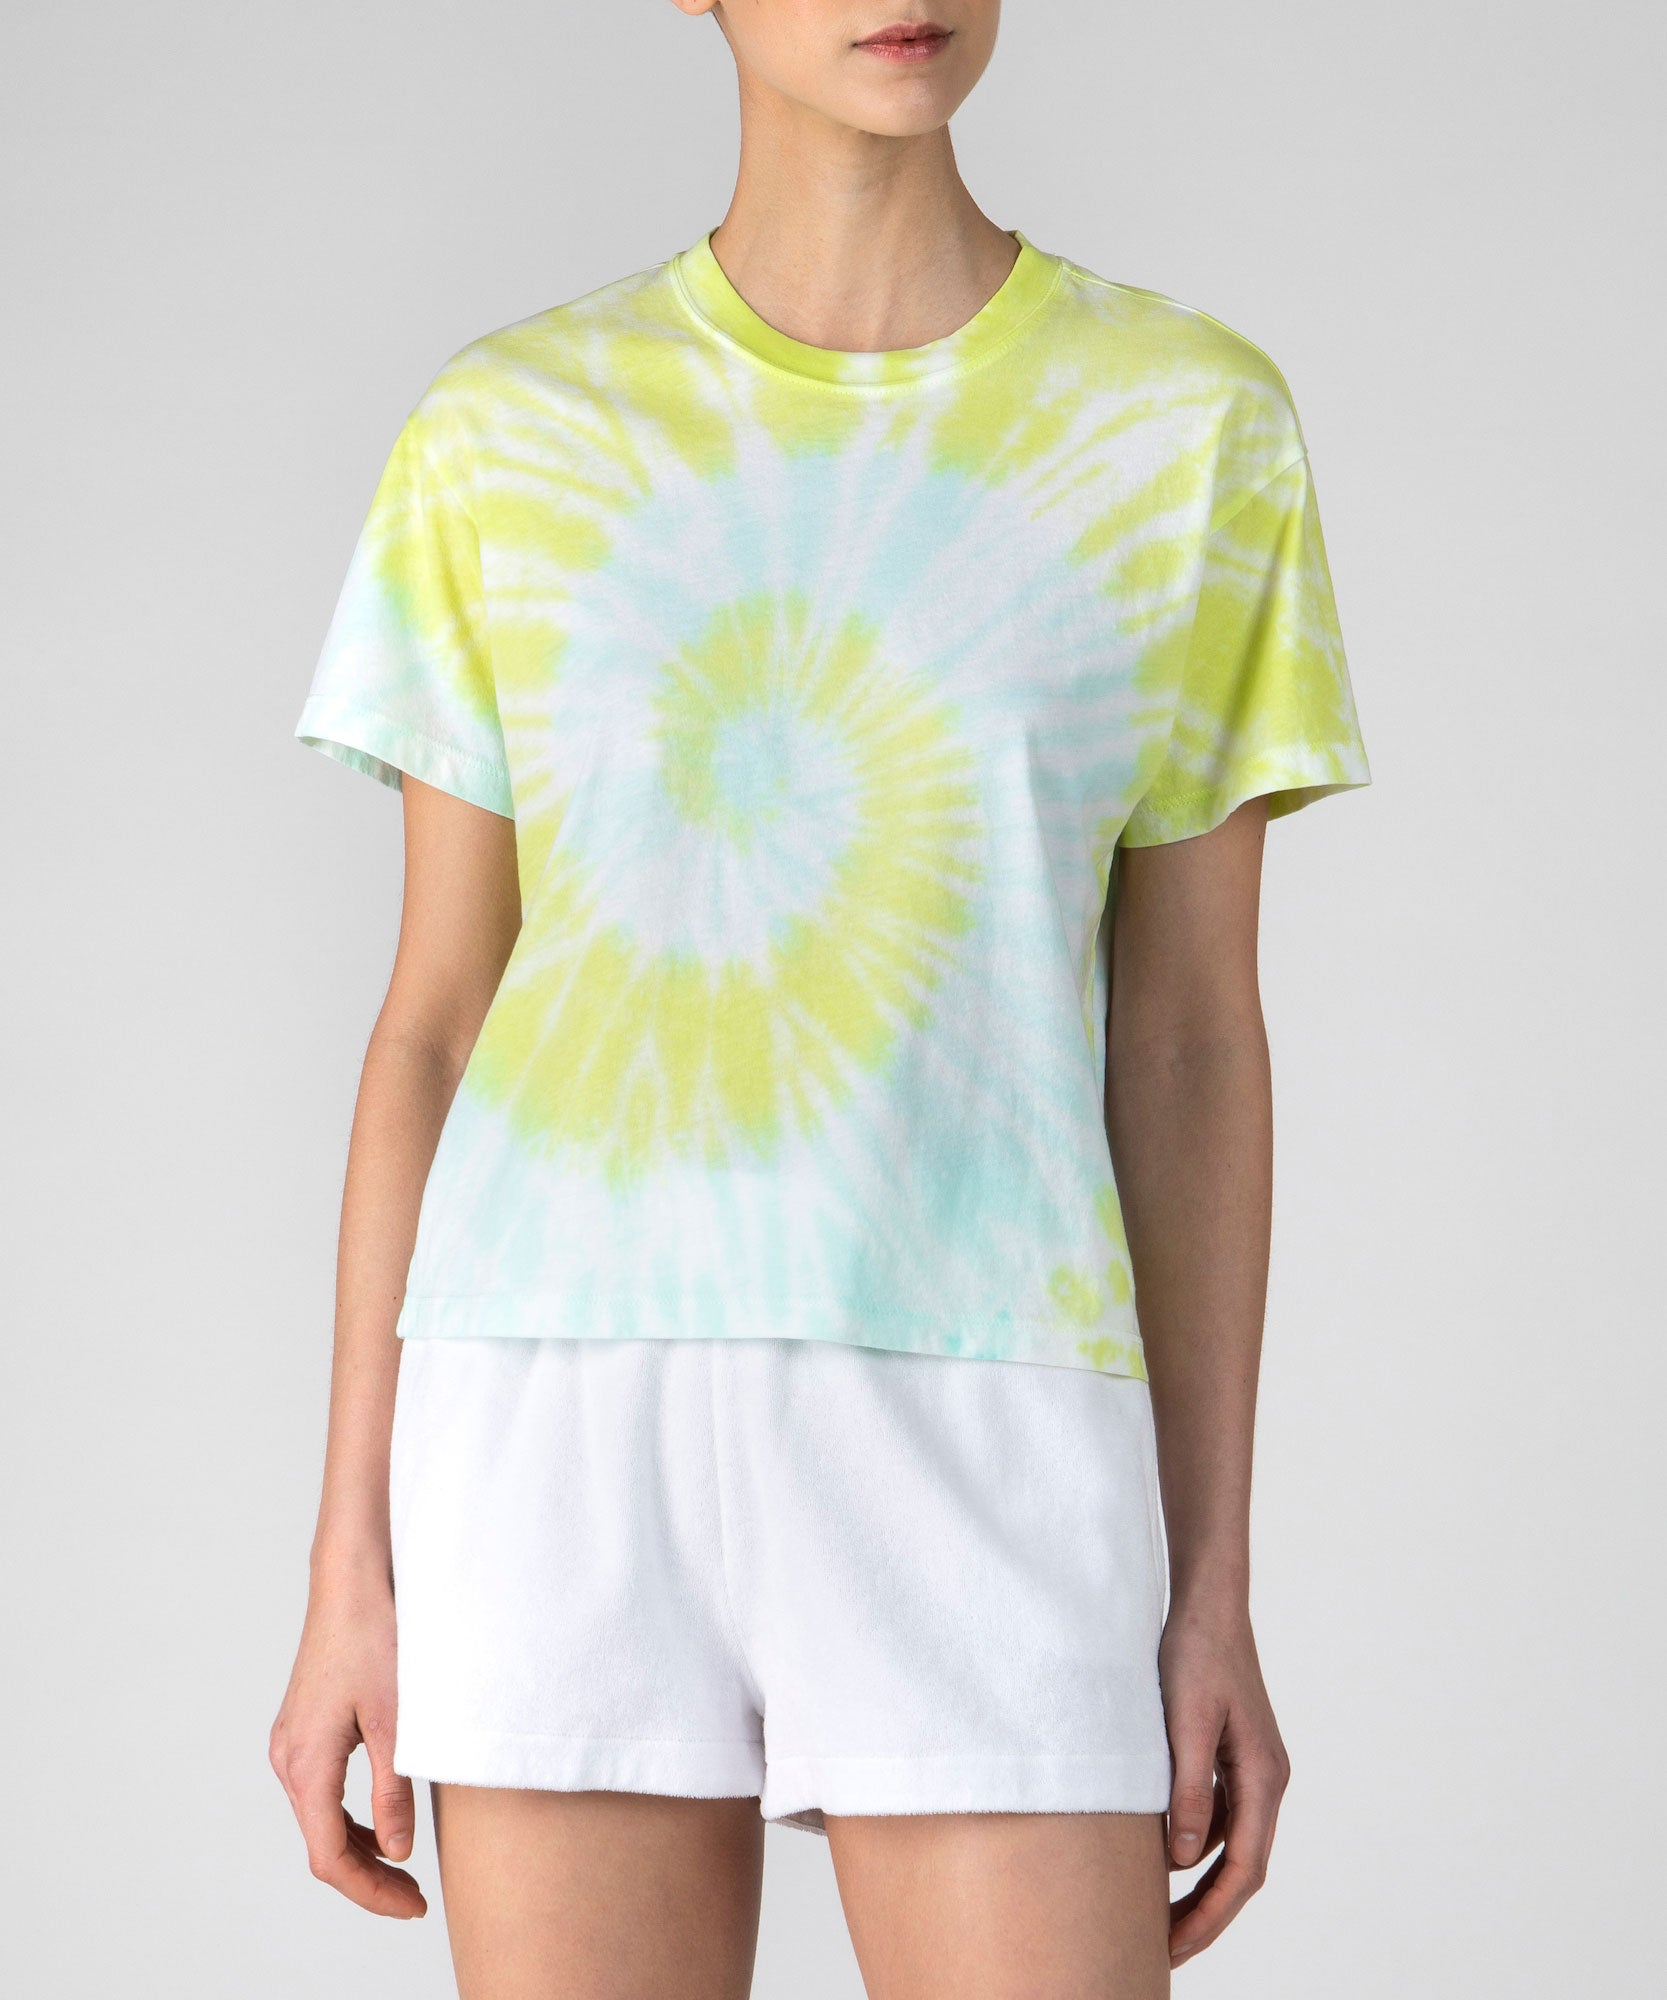 White Tie Dye Combo Classic Jersey Short Sleeve Boy Tee - Women's Cotton Short Sleeve T-shirt by ATM Anthony Thomas Melillo